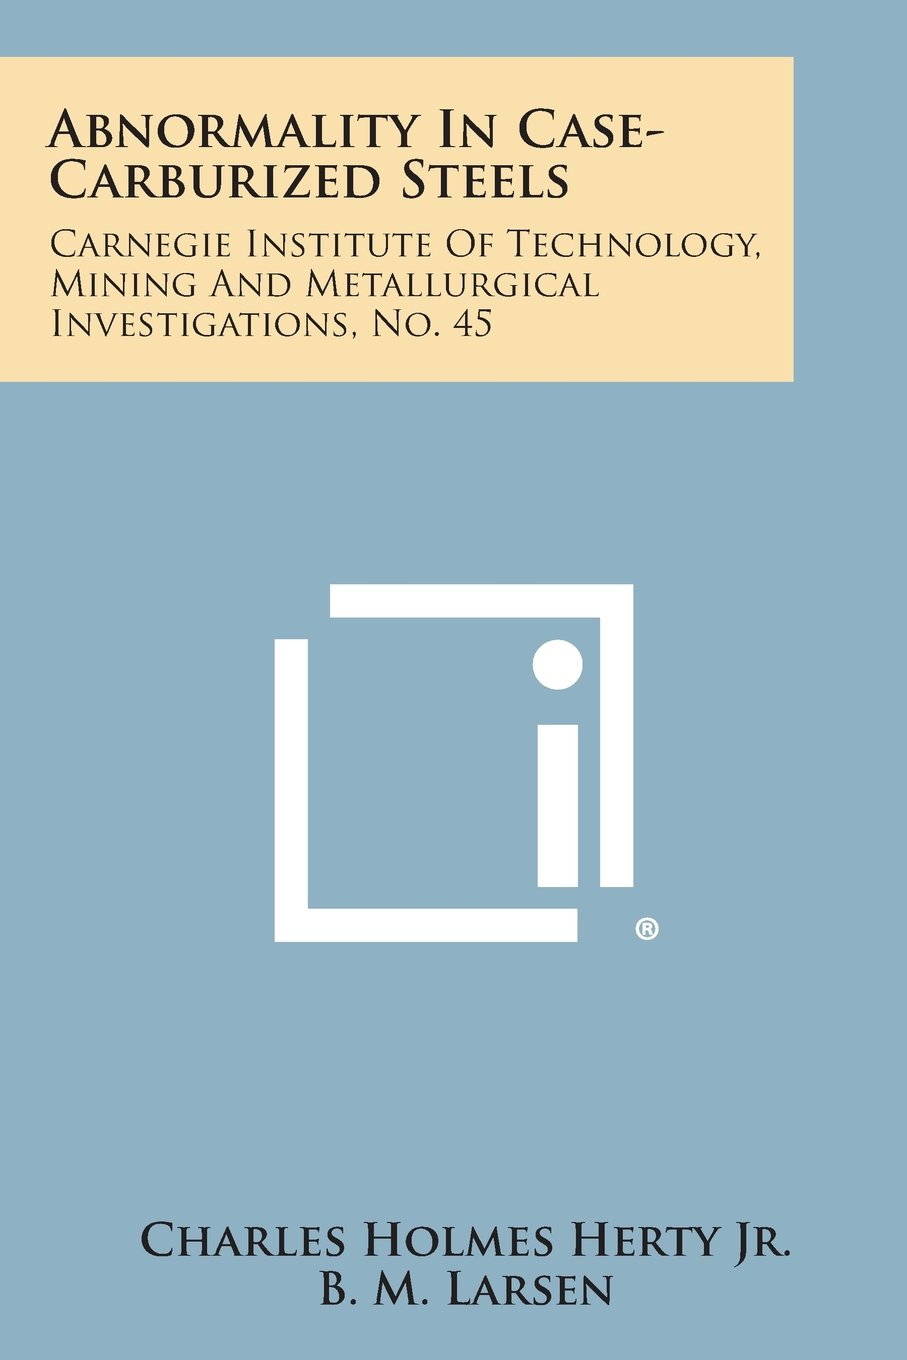 Download Abnormality in Case-Carburized Steels: Carnegie Institute of Technology, Mining and Metallurgical Investigations, No. 45 PDF